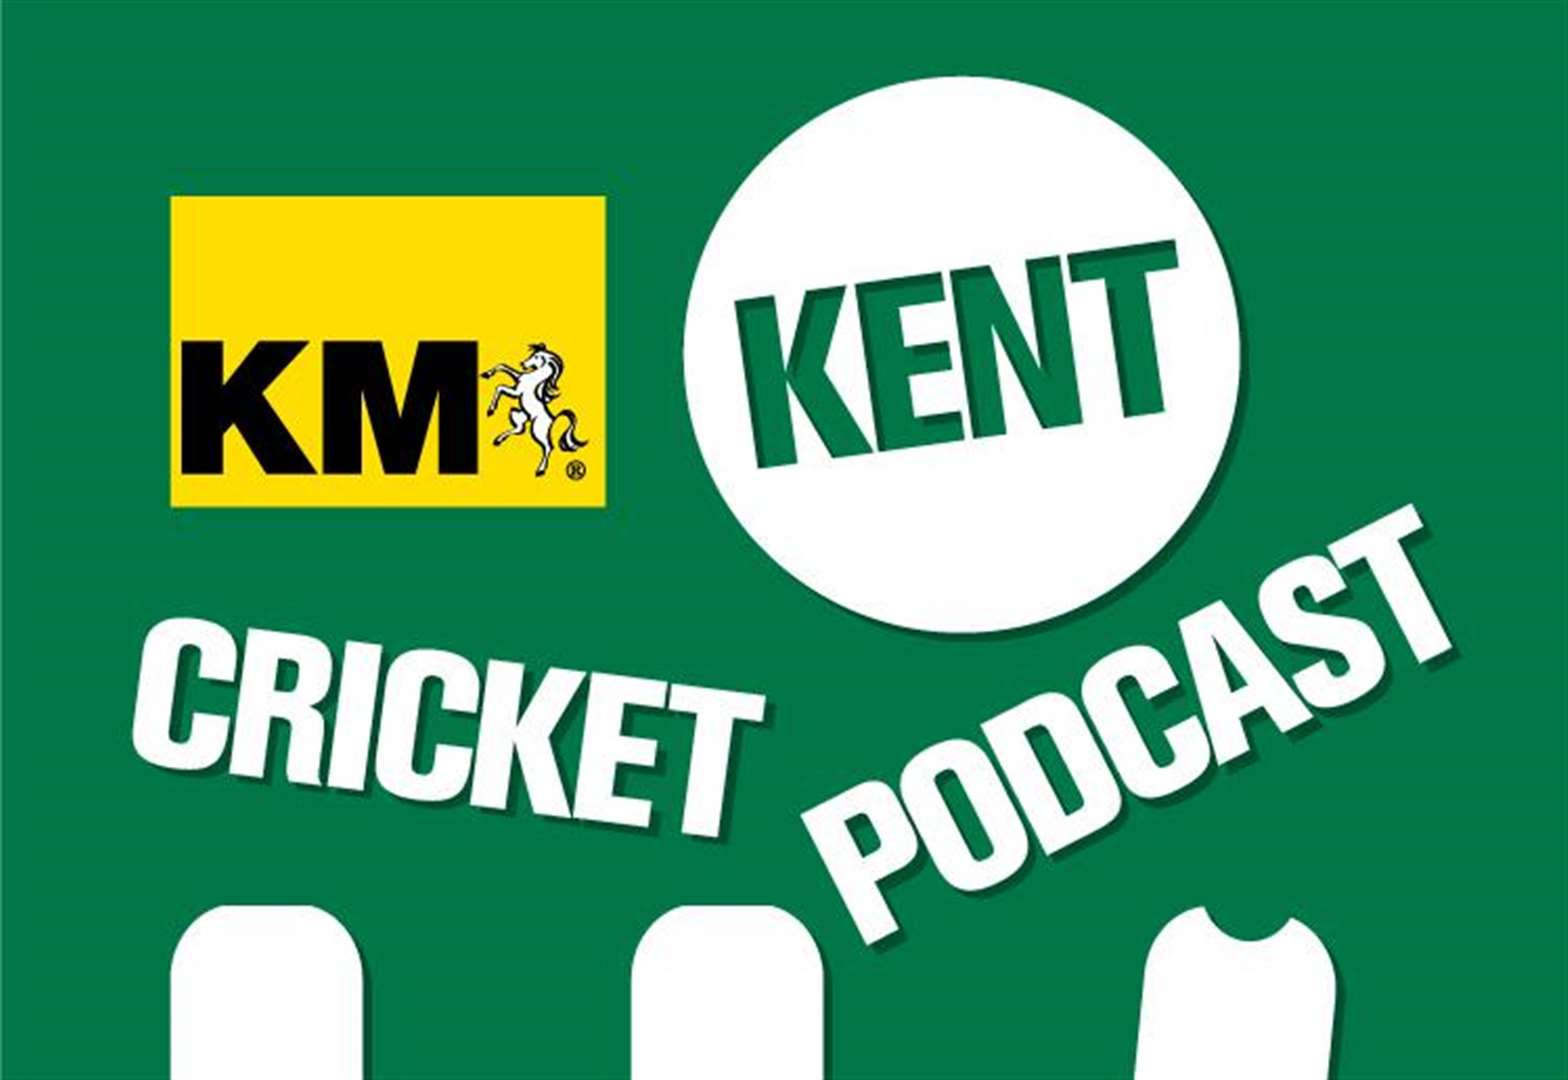 Kent Cricket Podcast episode 7